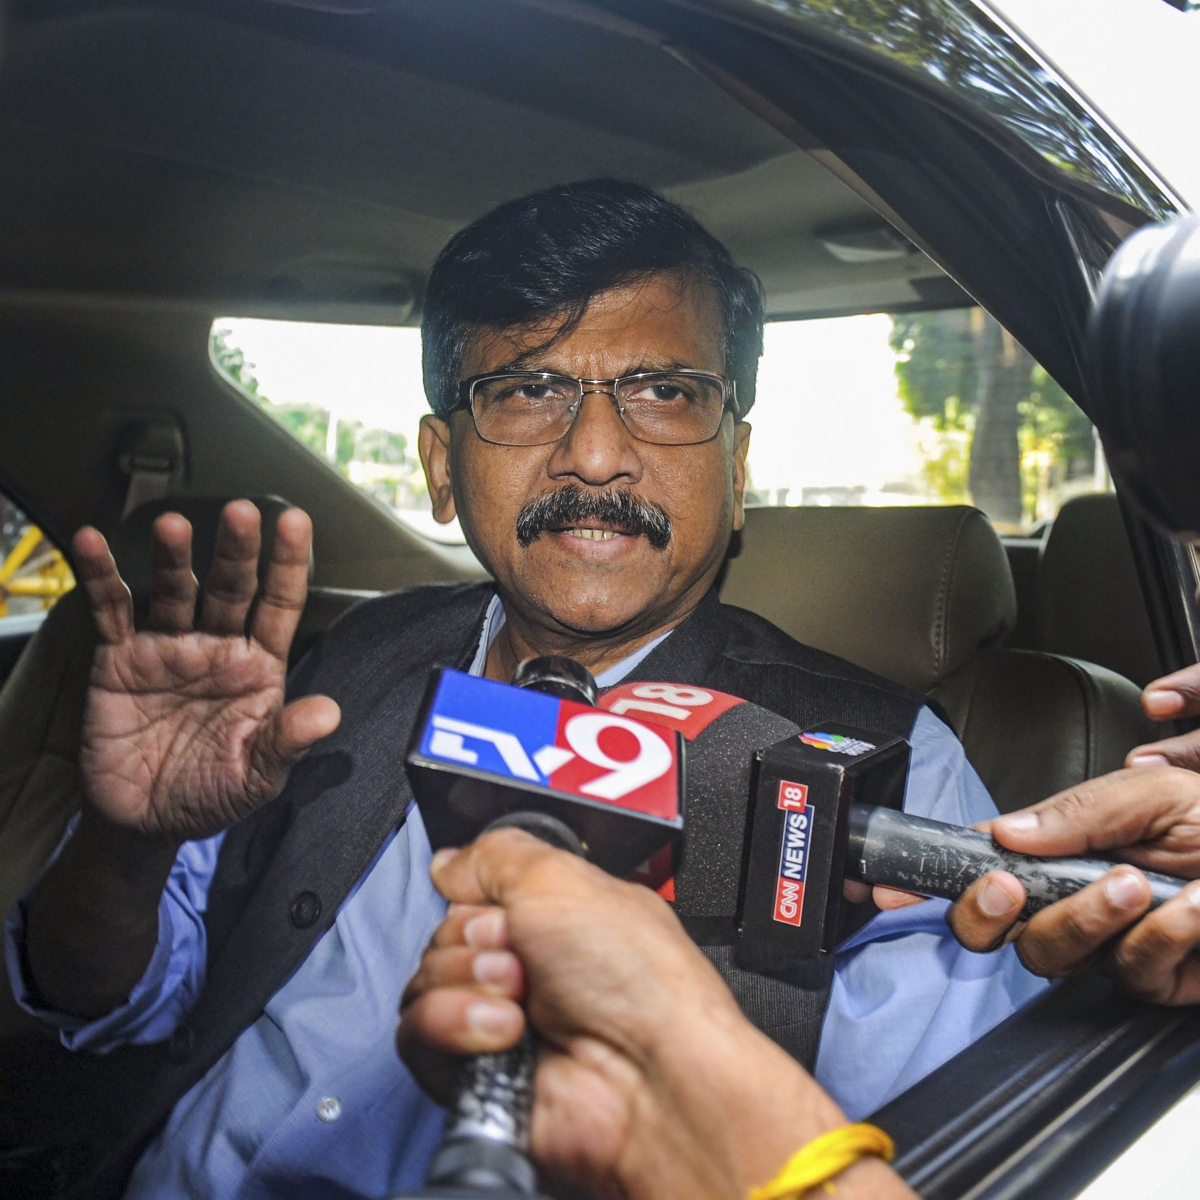 Declare who is stalling Uddhav Thackeray's nomination, Sanjay Raut to Guv BS Koshyari